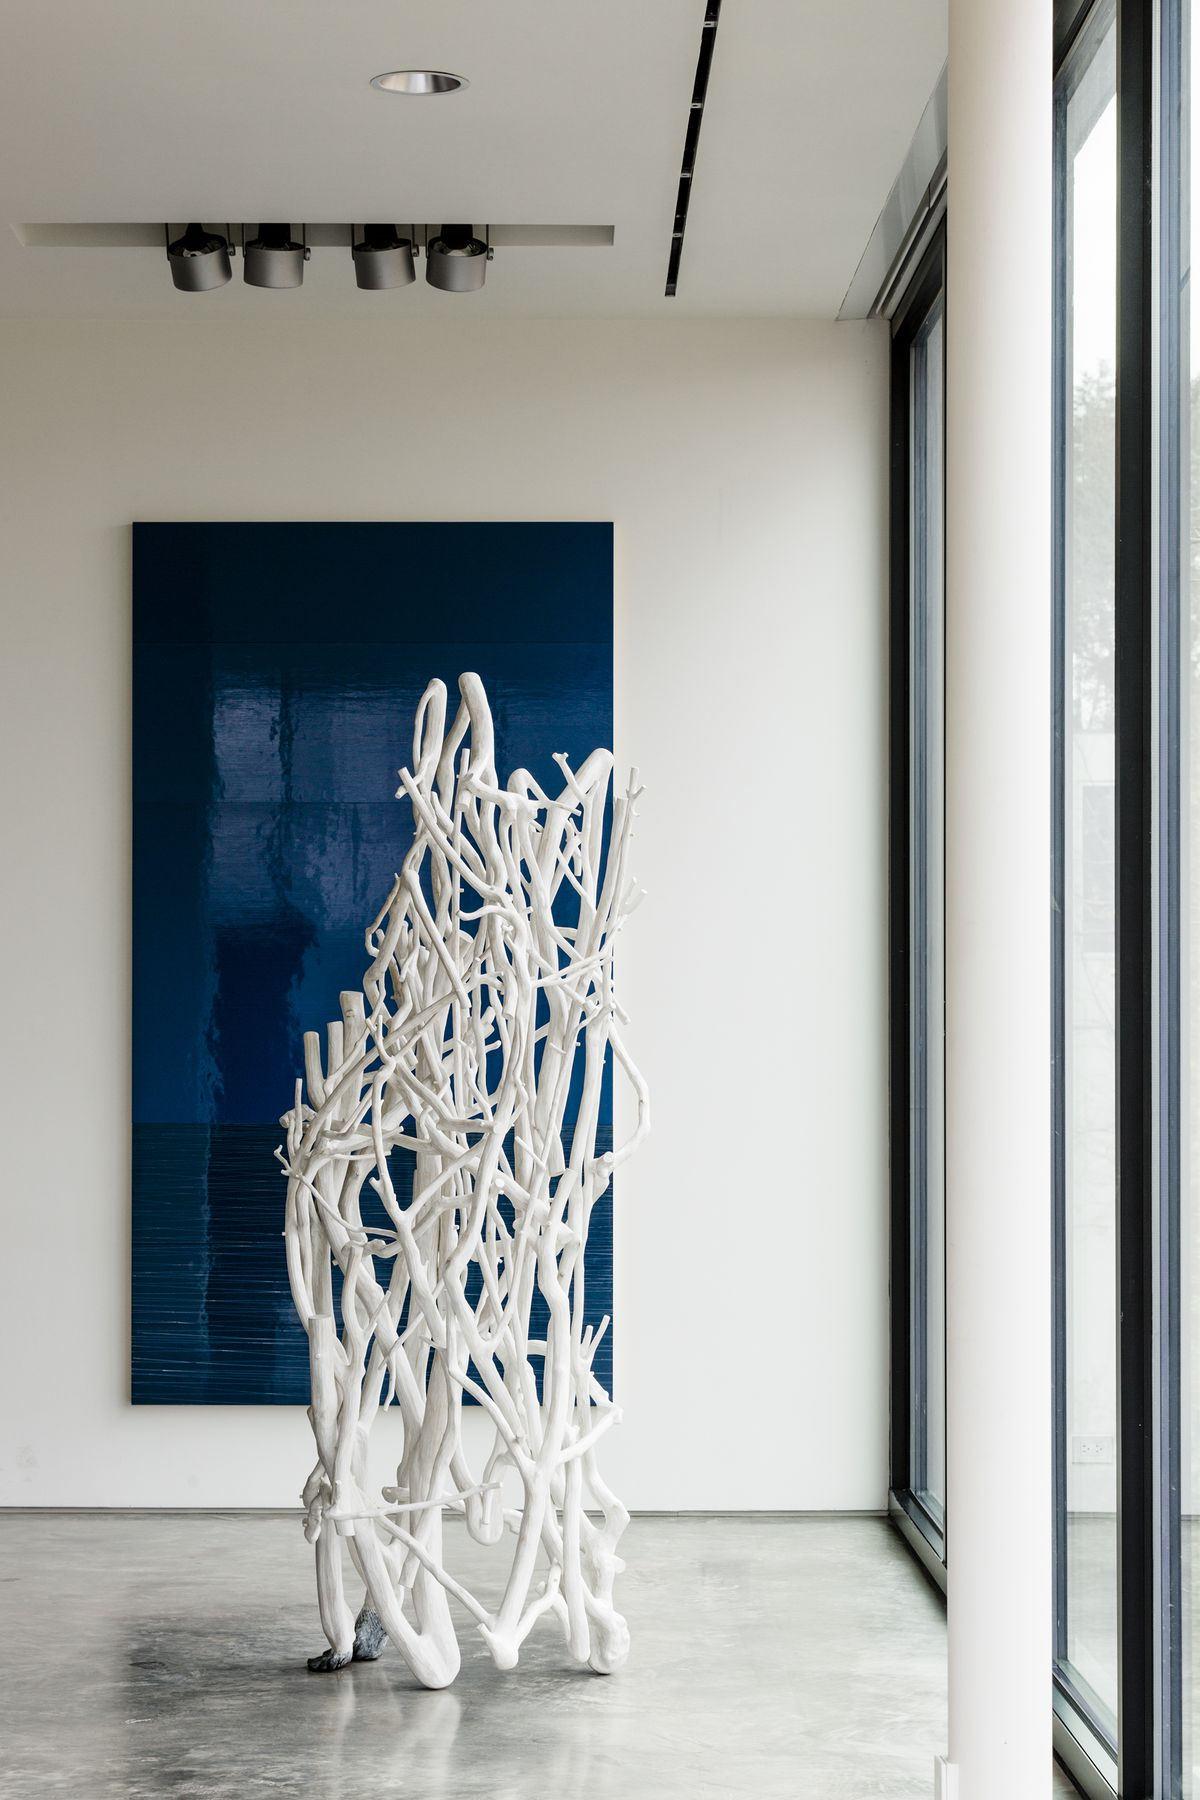 A large, white, twig-like sculpture stands next to a window.